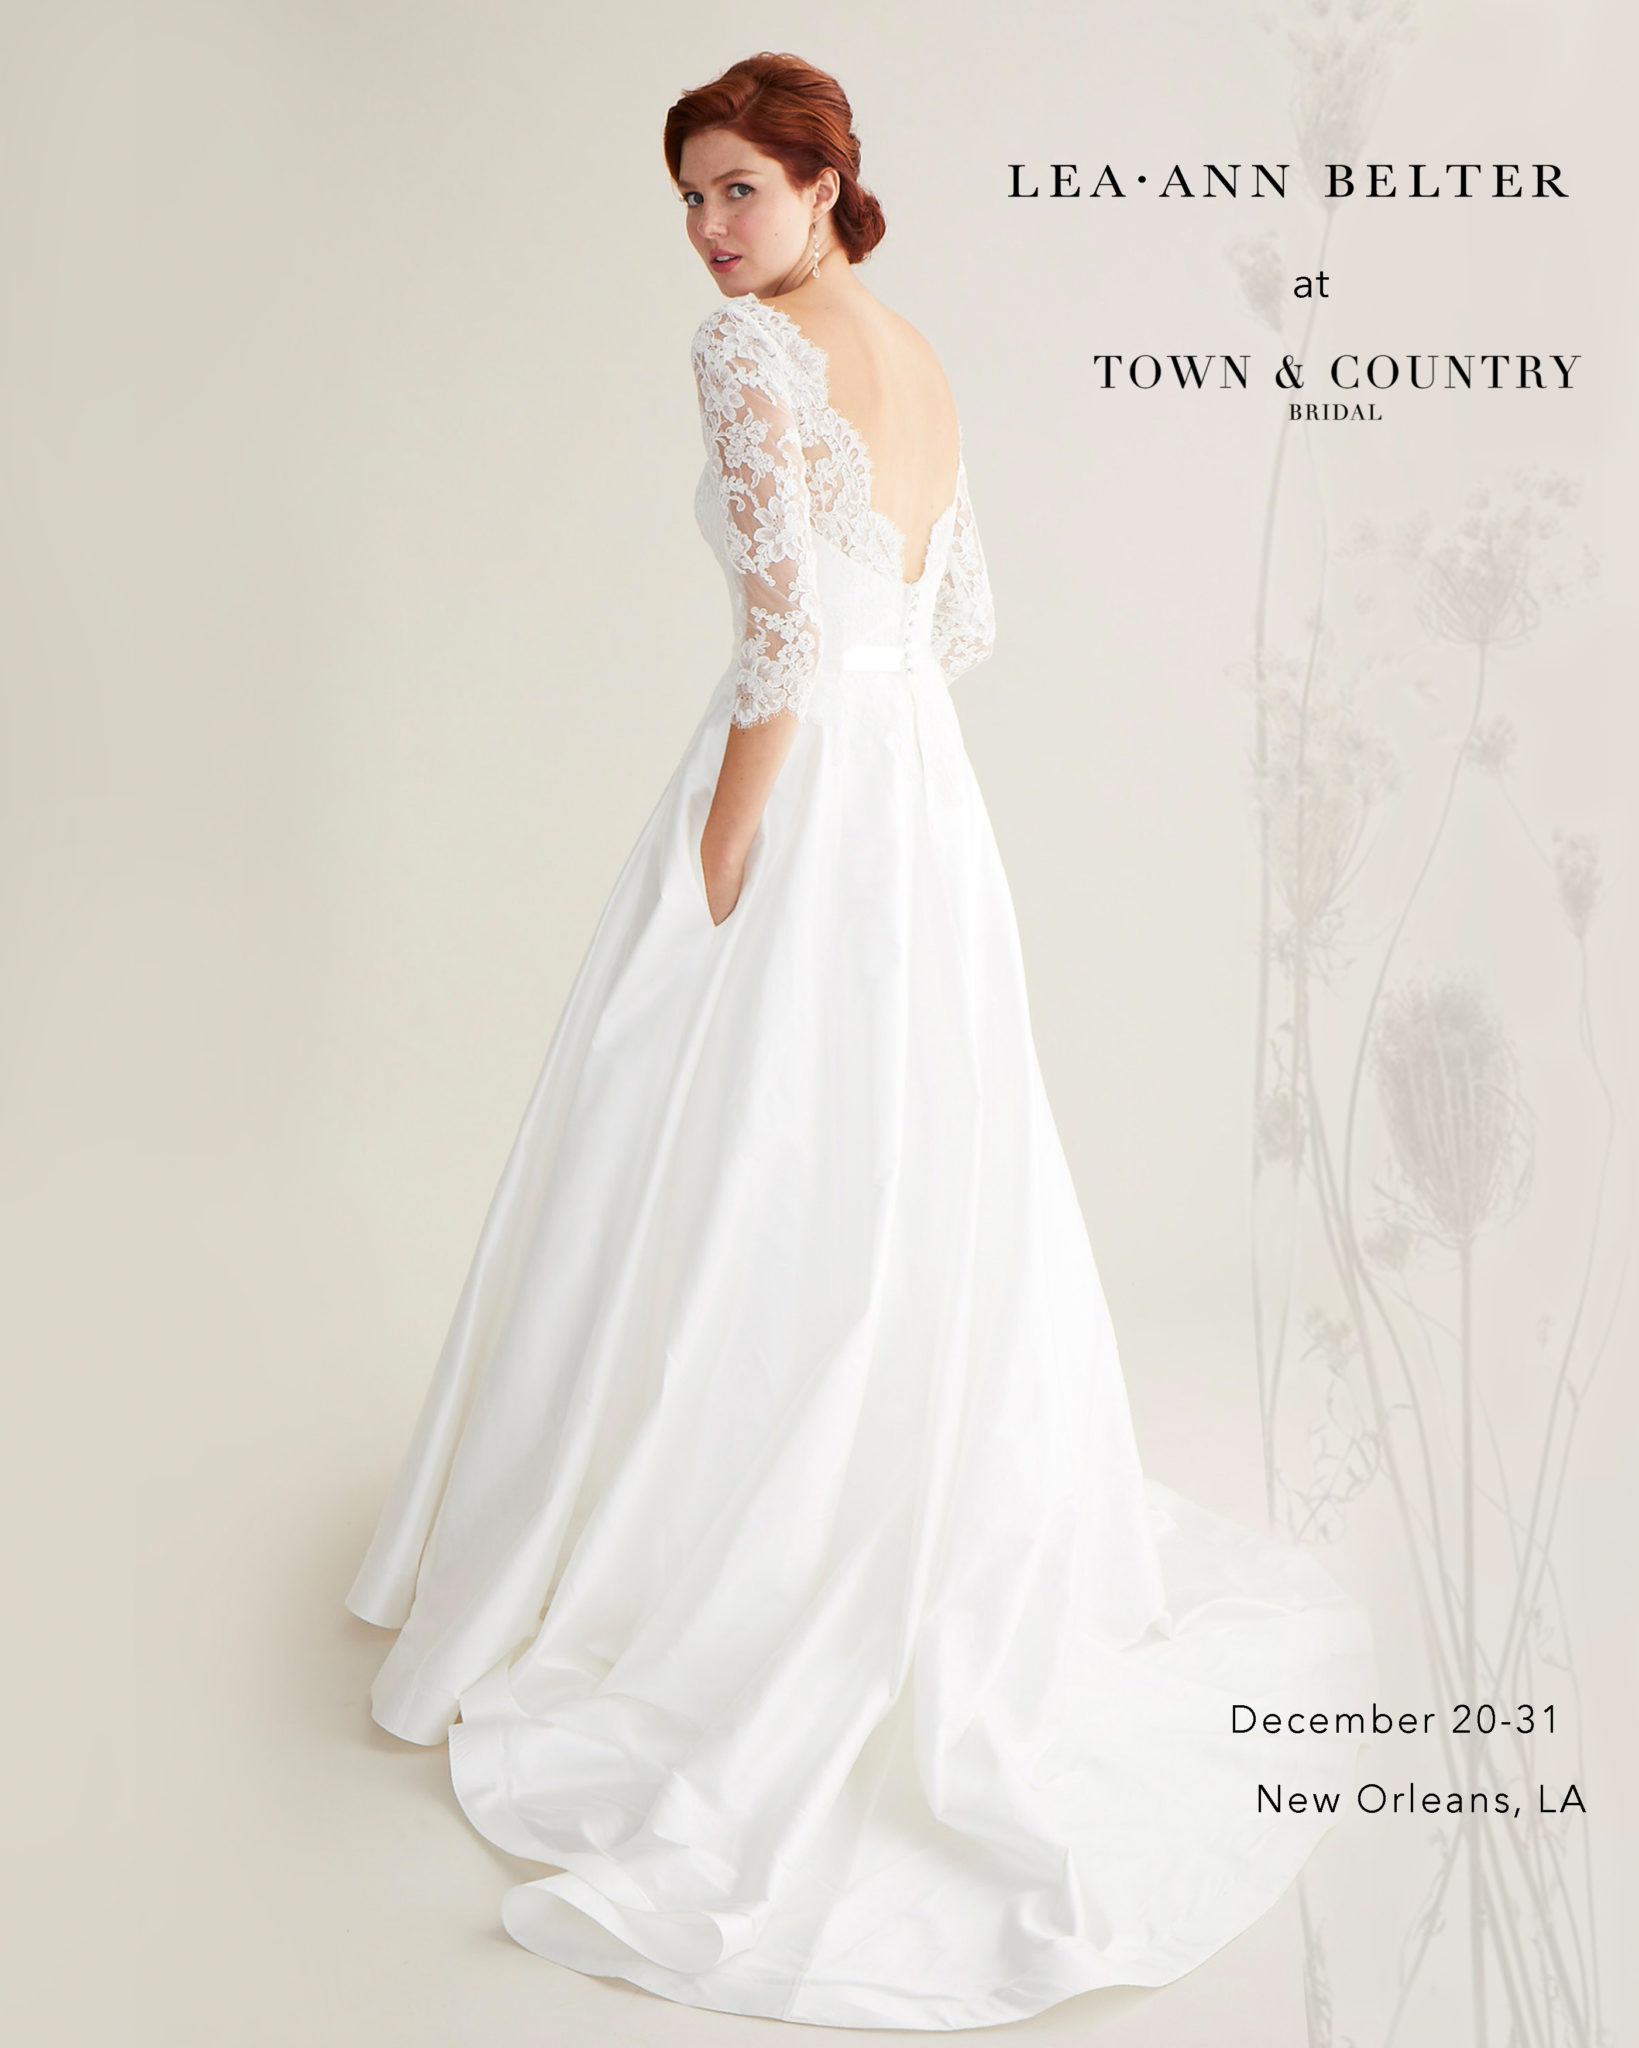 Town And Country Weddings: Town & Country Bridal - Lea